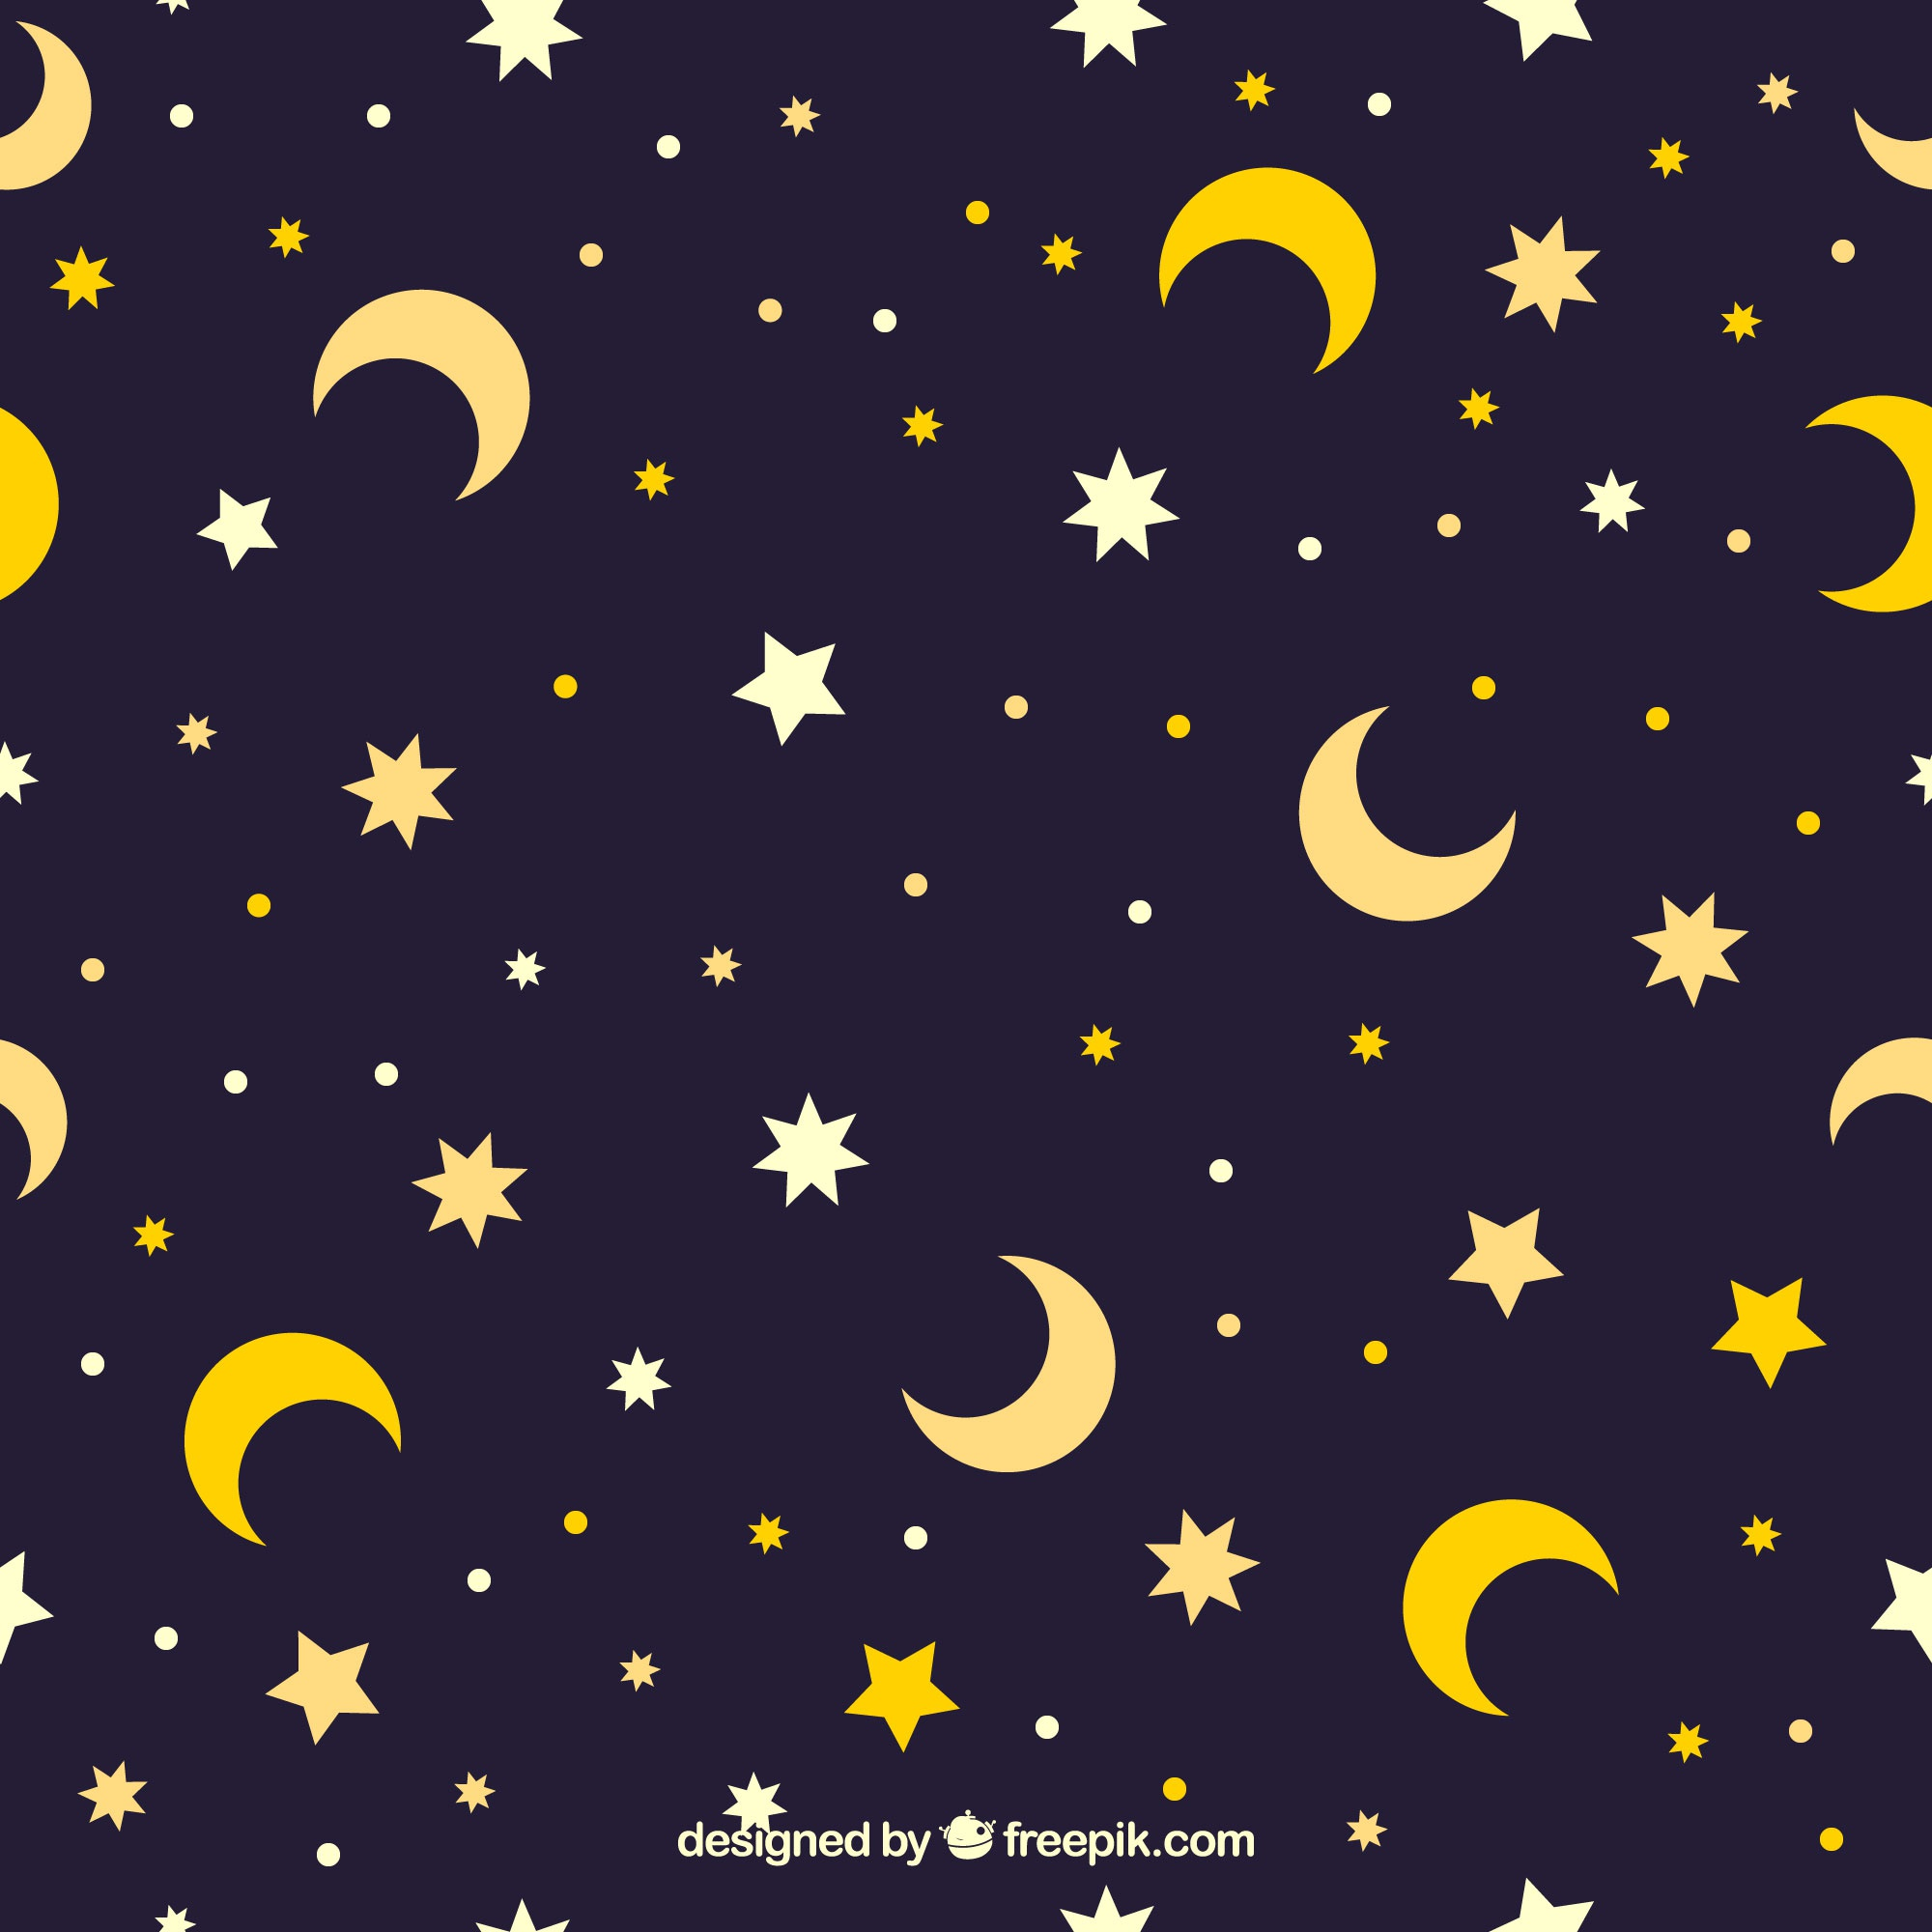 Star and moon pattern